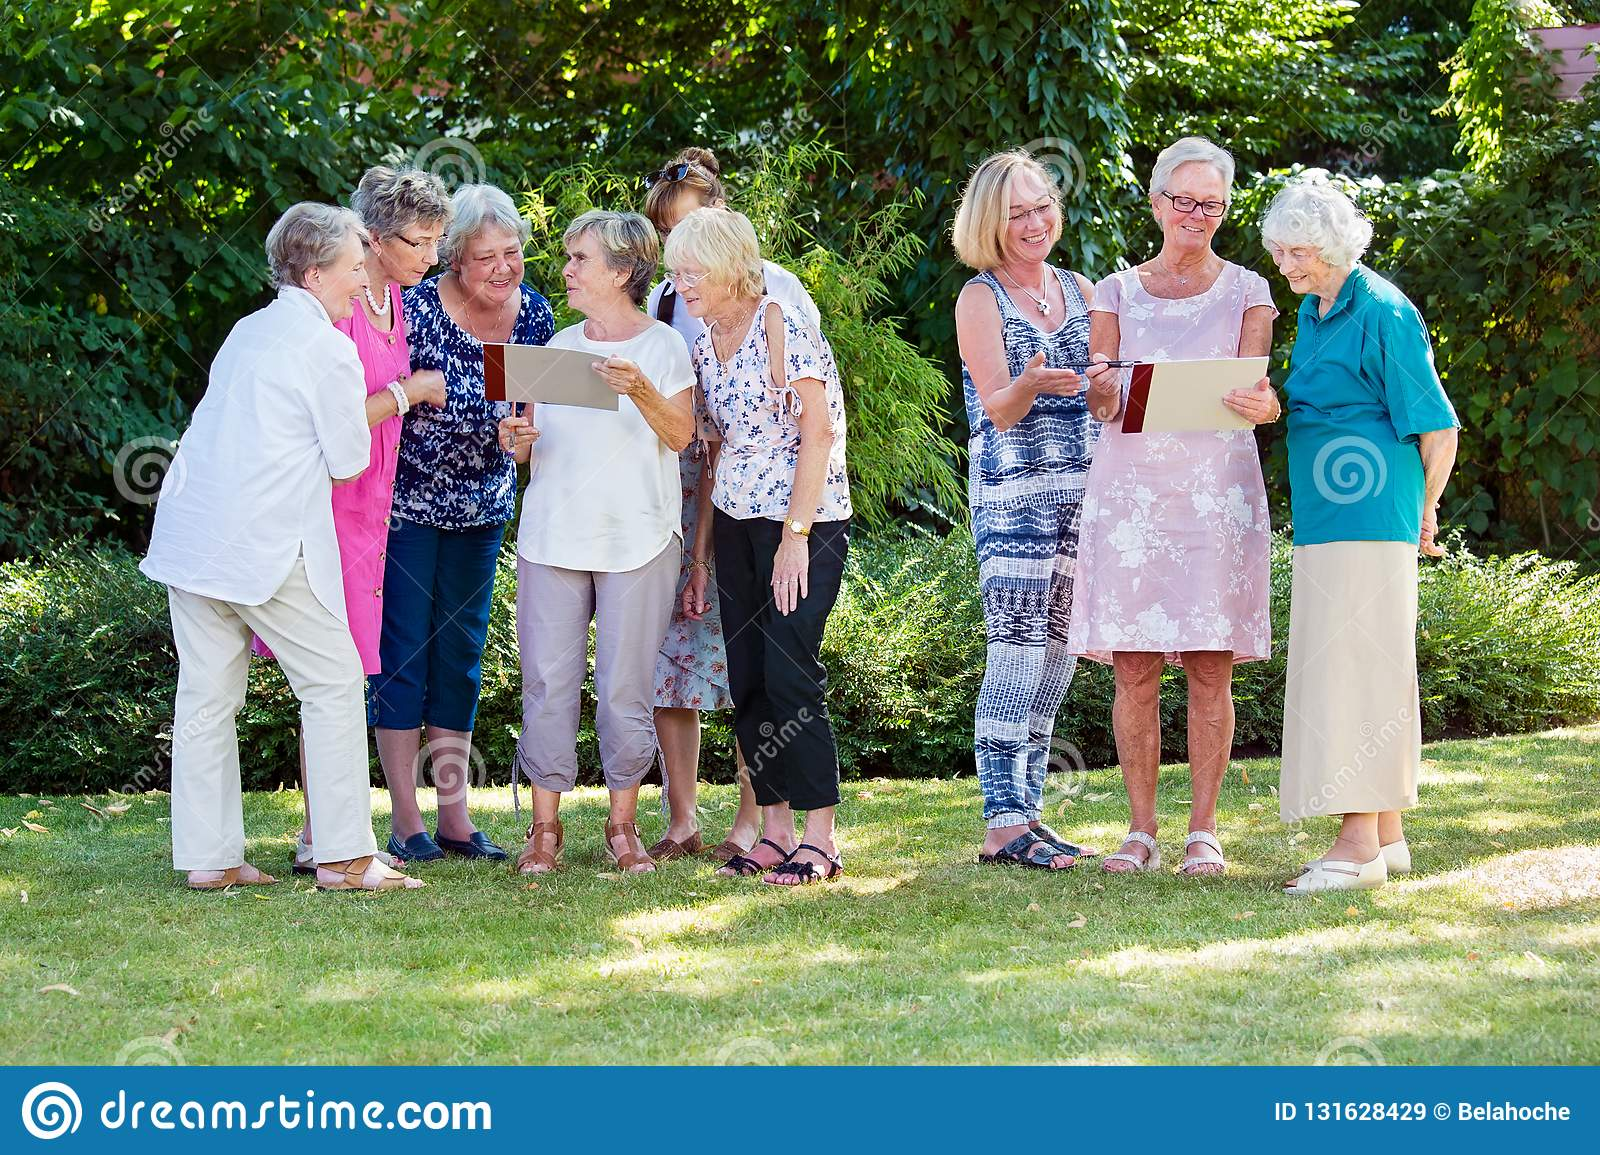 Group of elderly ladies at a care home enjoying a stimulating creative art class outdoors in a garden or park.